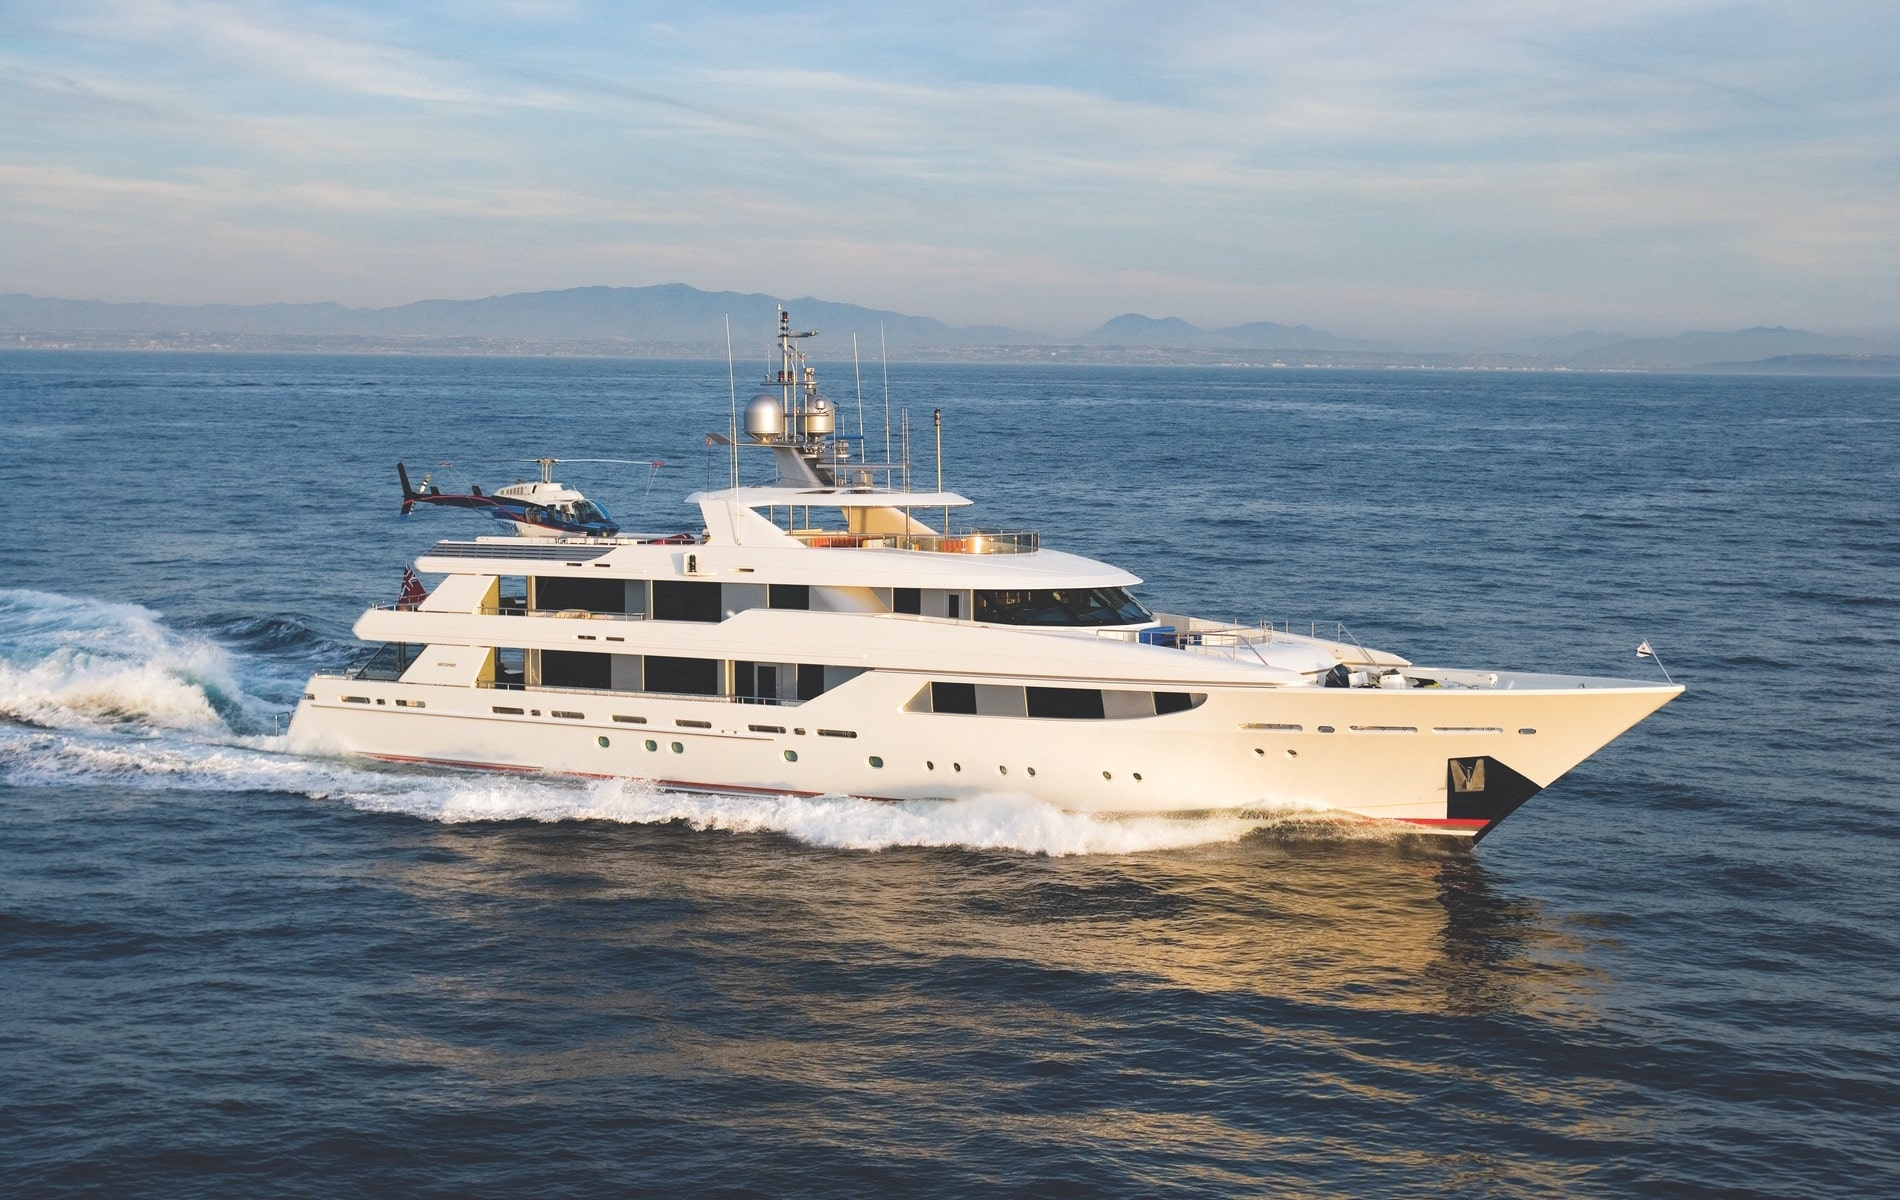 The Westport 164-foot (50m) Tri-Deck Motoryacht boasts six staterooms, including a top-deck VIP suite with its own sun deck, plus a large formal dining room, a commercial-grade galley, and much more.